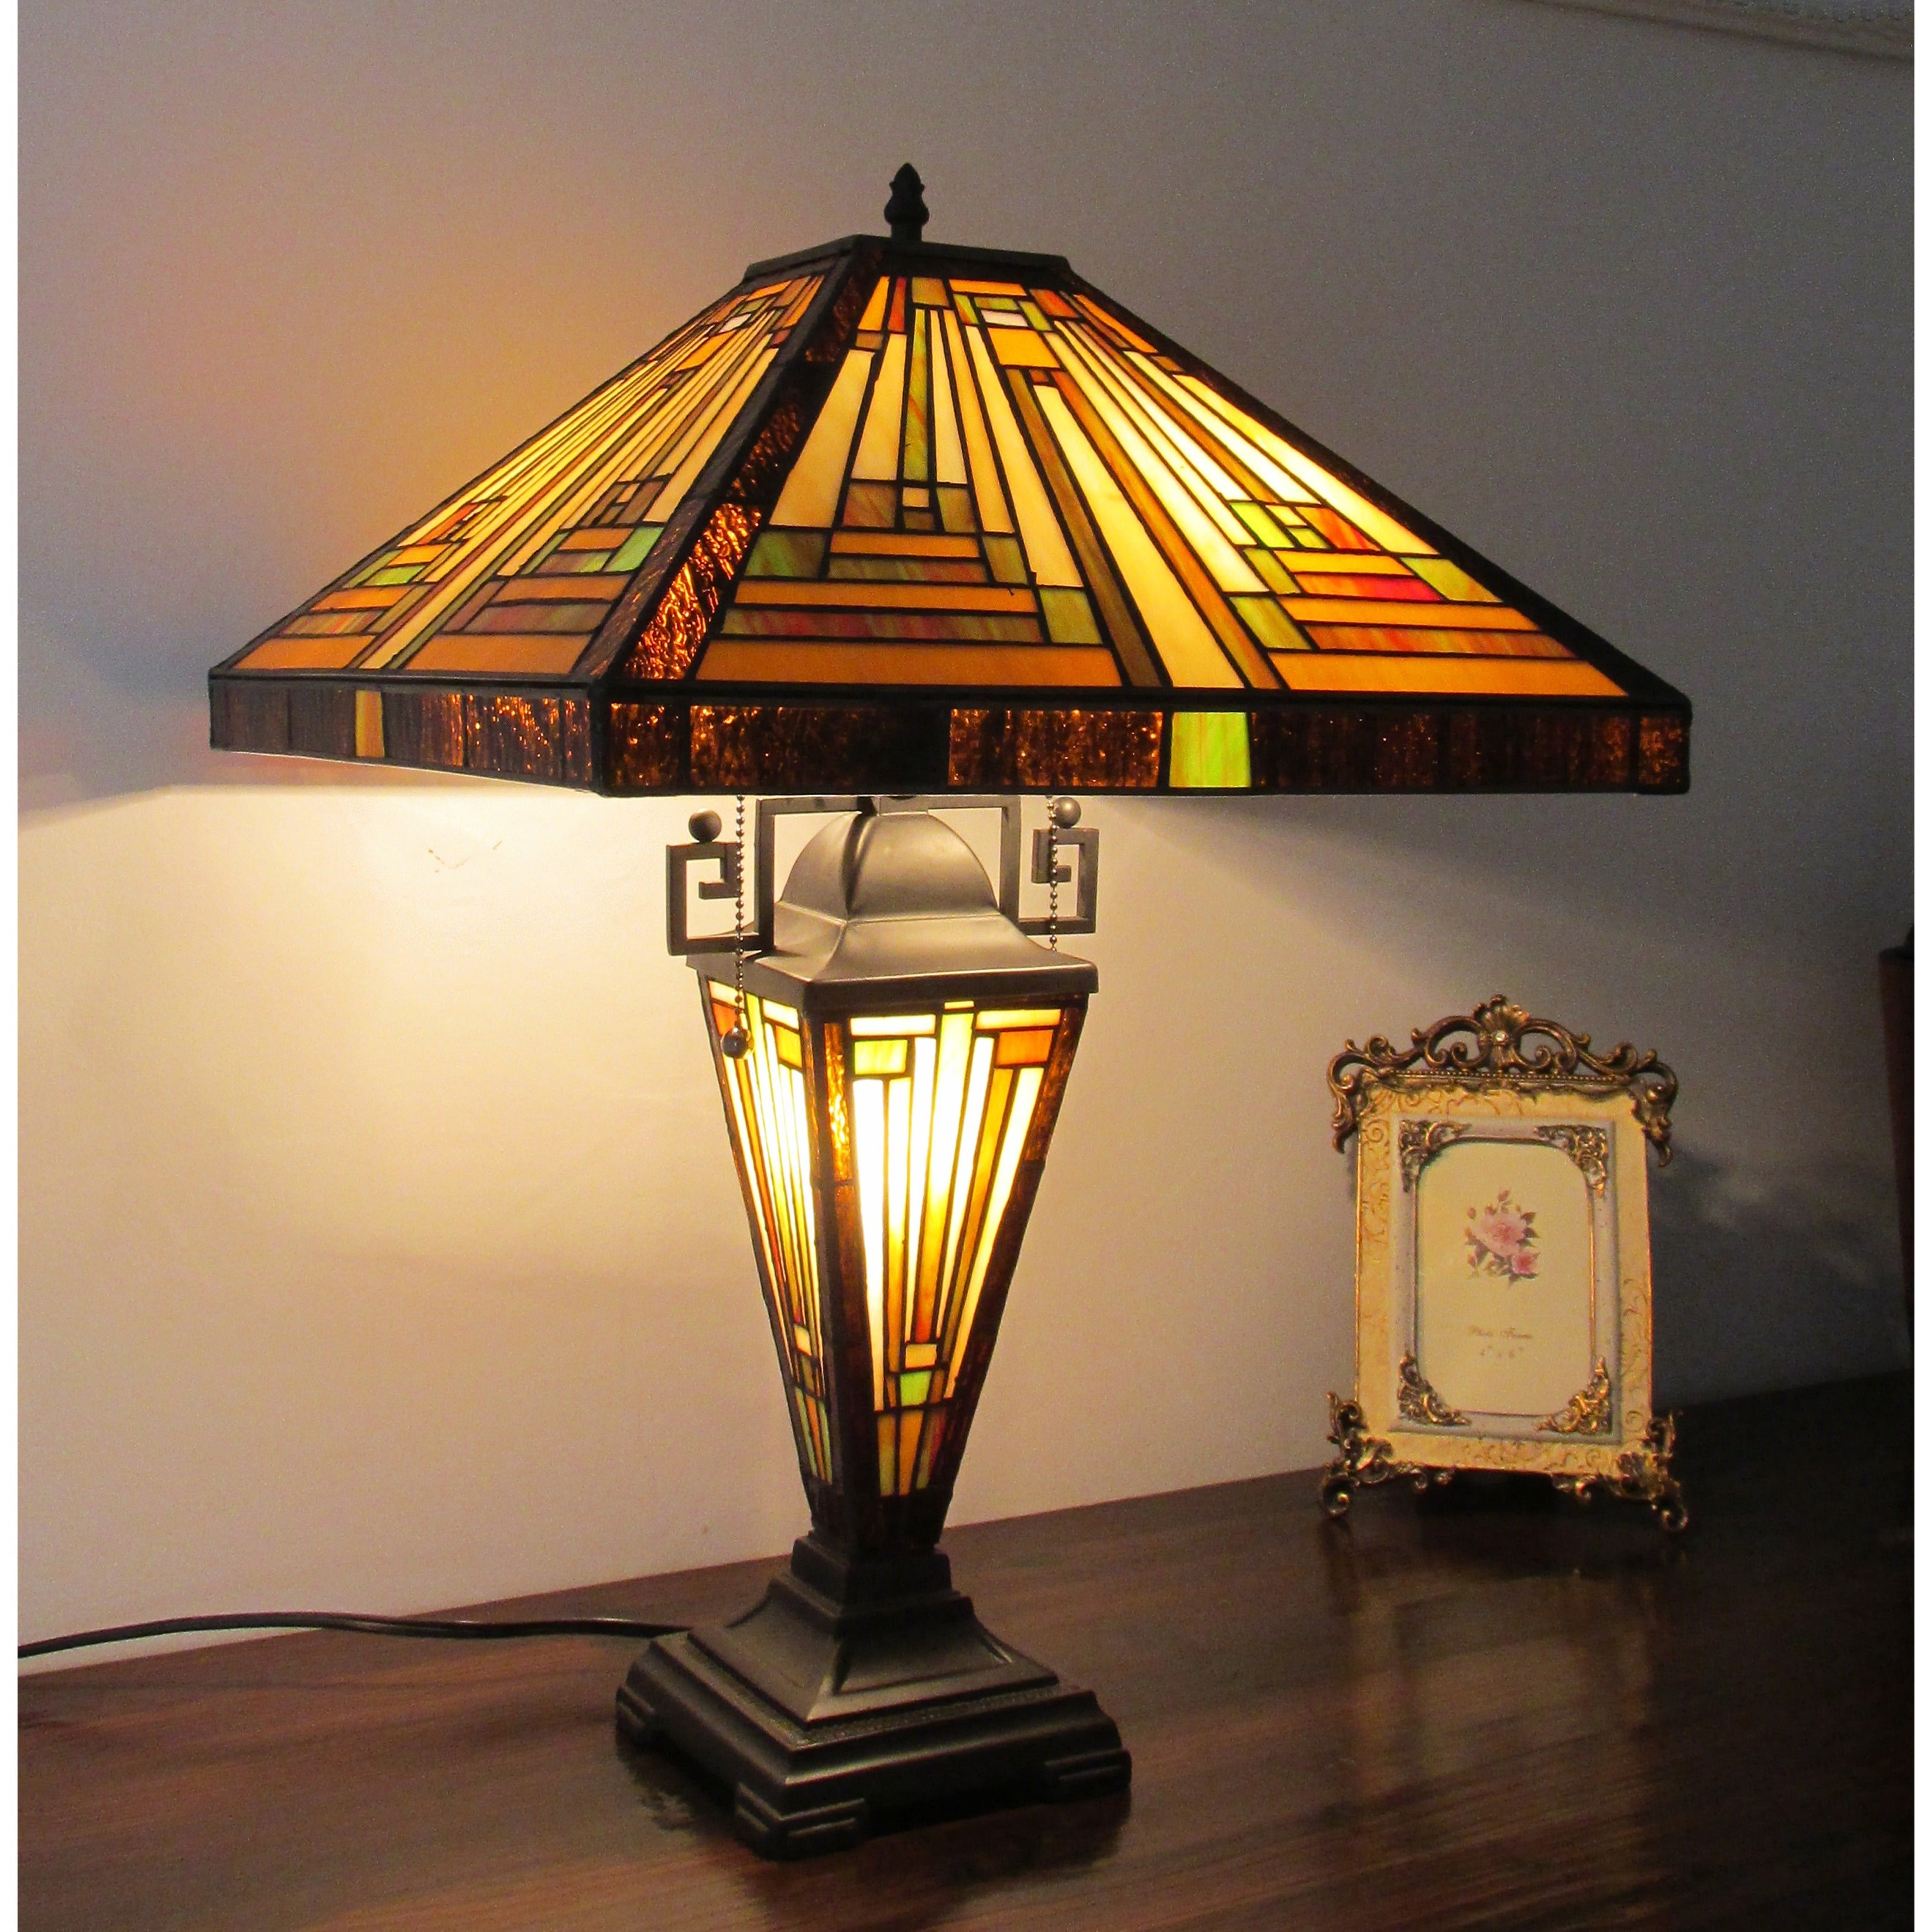 vintage lamp stained for nicholas shades on delphi lampshade artist tiffany sale ltd design tulip glass antiques wells tiffanytulipstainedglasslampshade base shade lamps